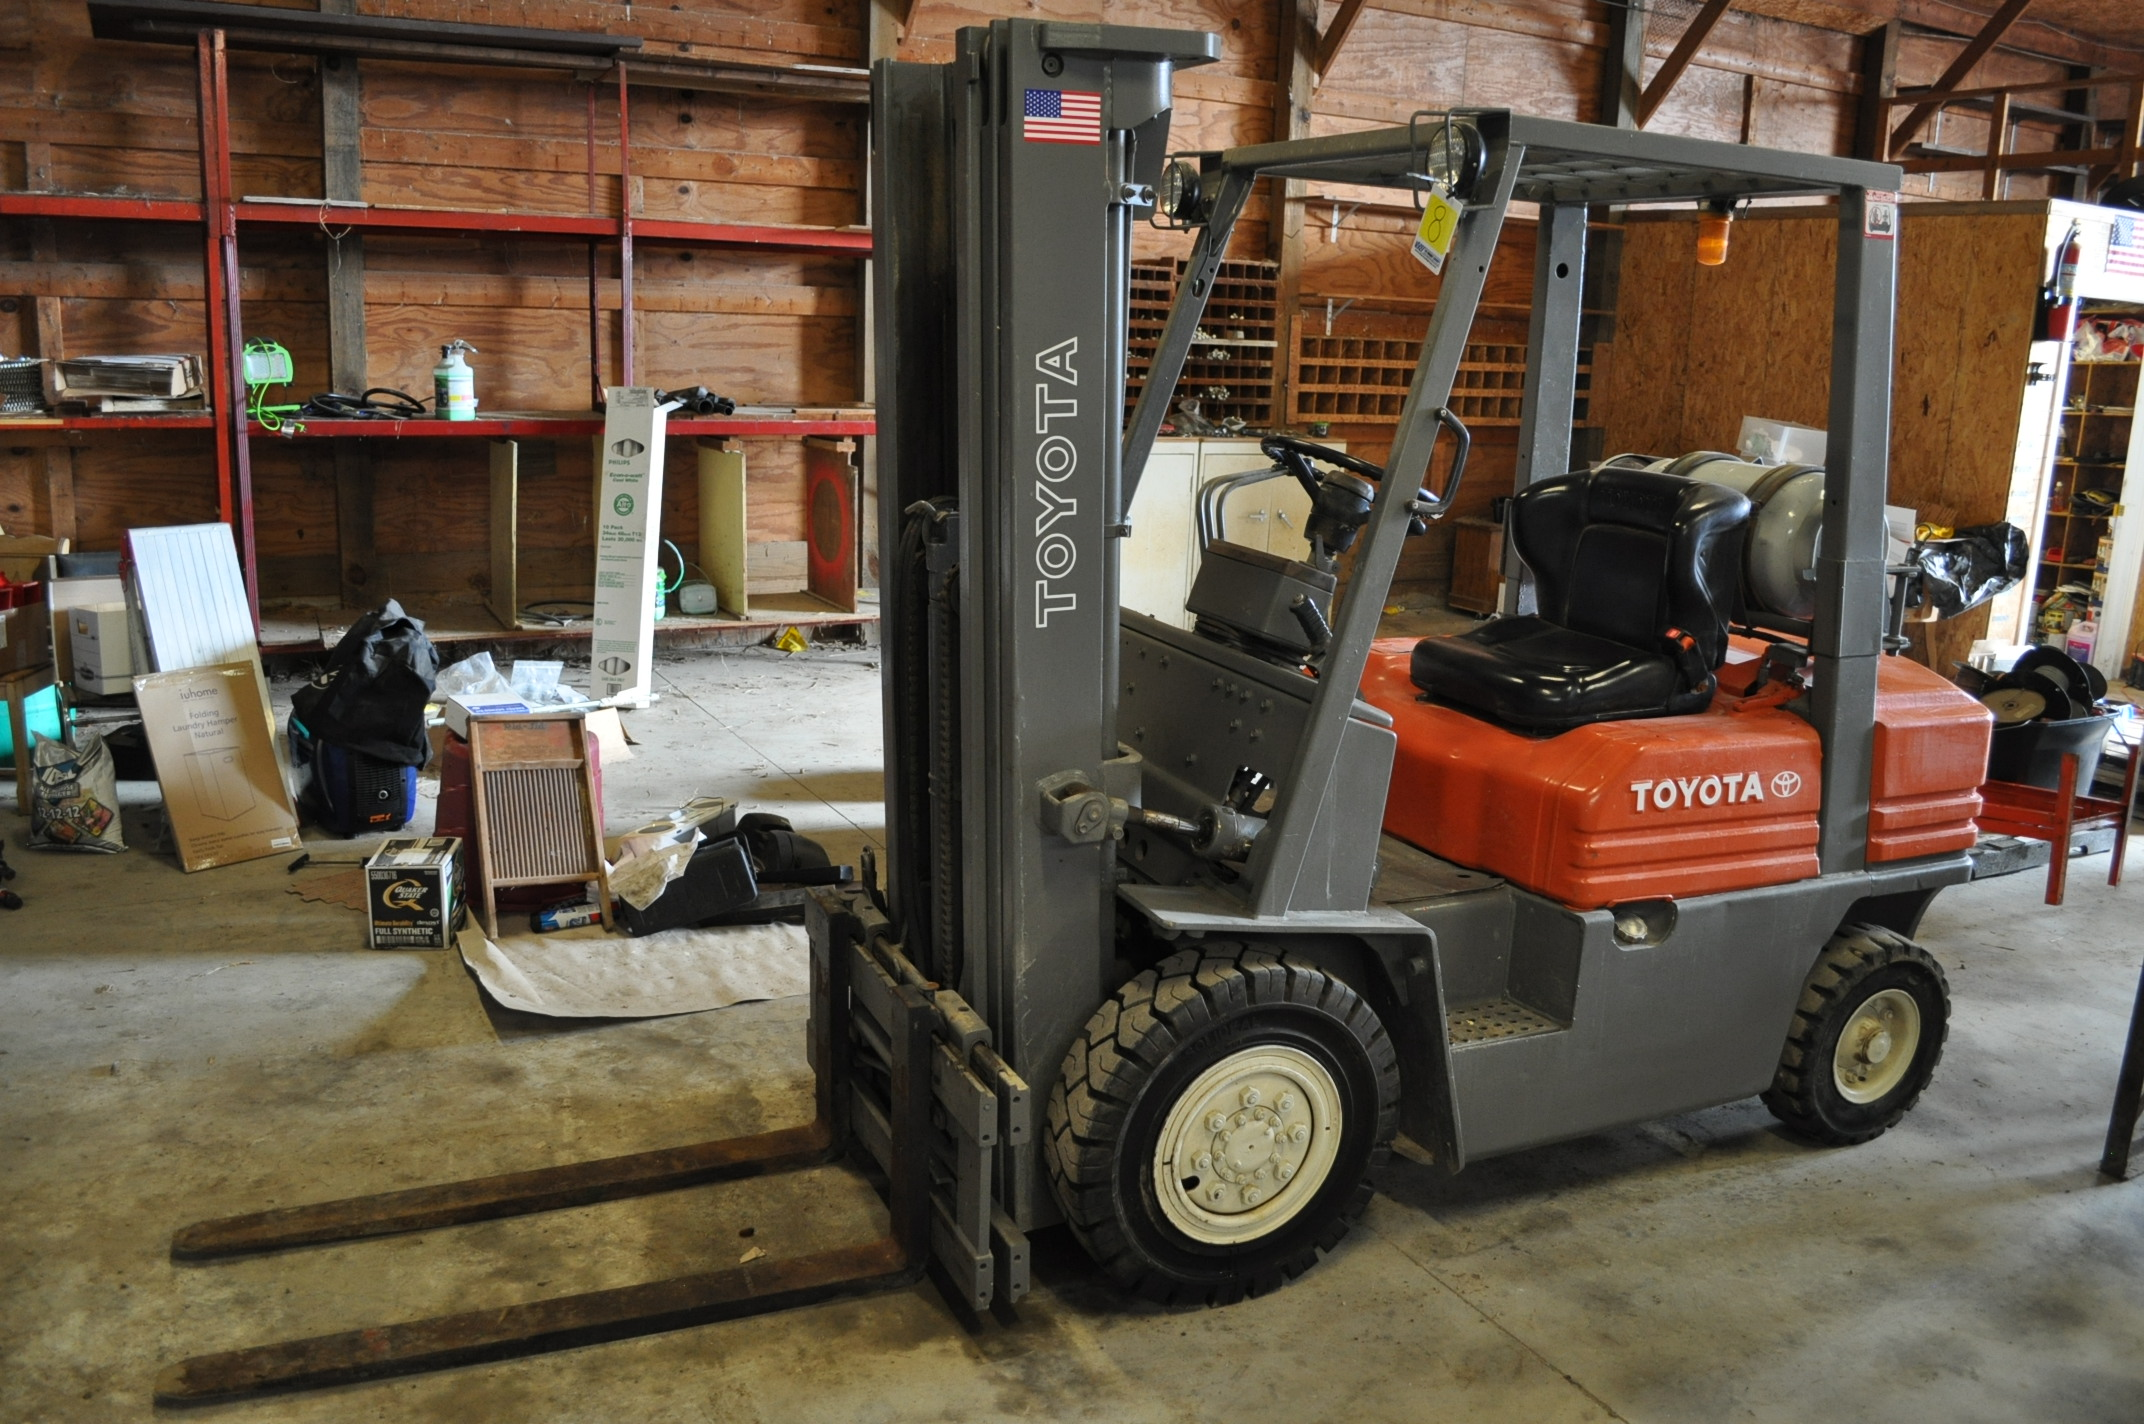 "Toyota 5 FG 10-30 forklift, 3 stage lift, 48"" forks side shift, LP, solid pneumatic, 10,520 hrs"